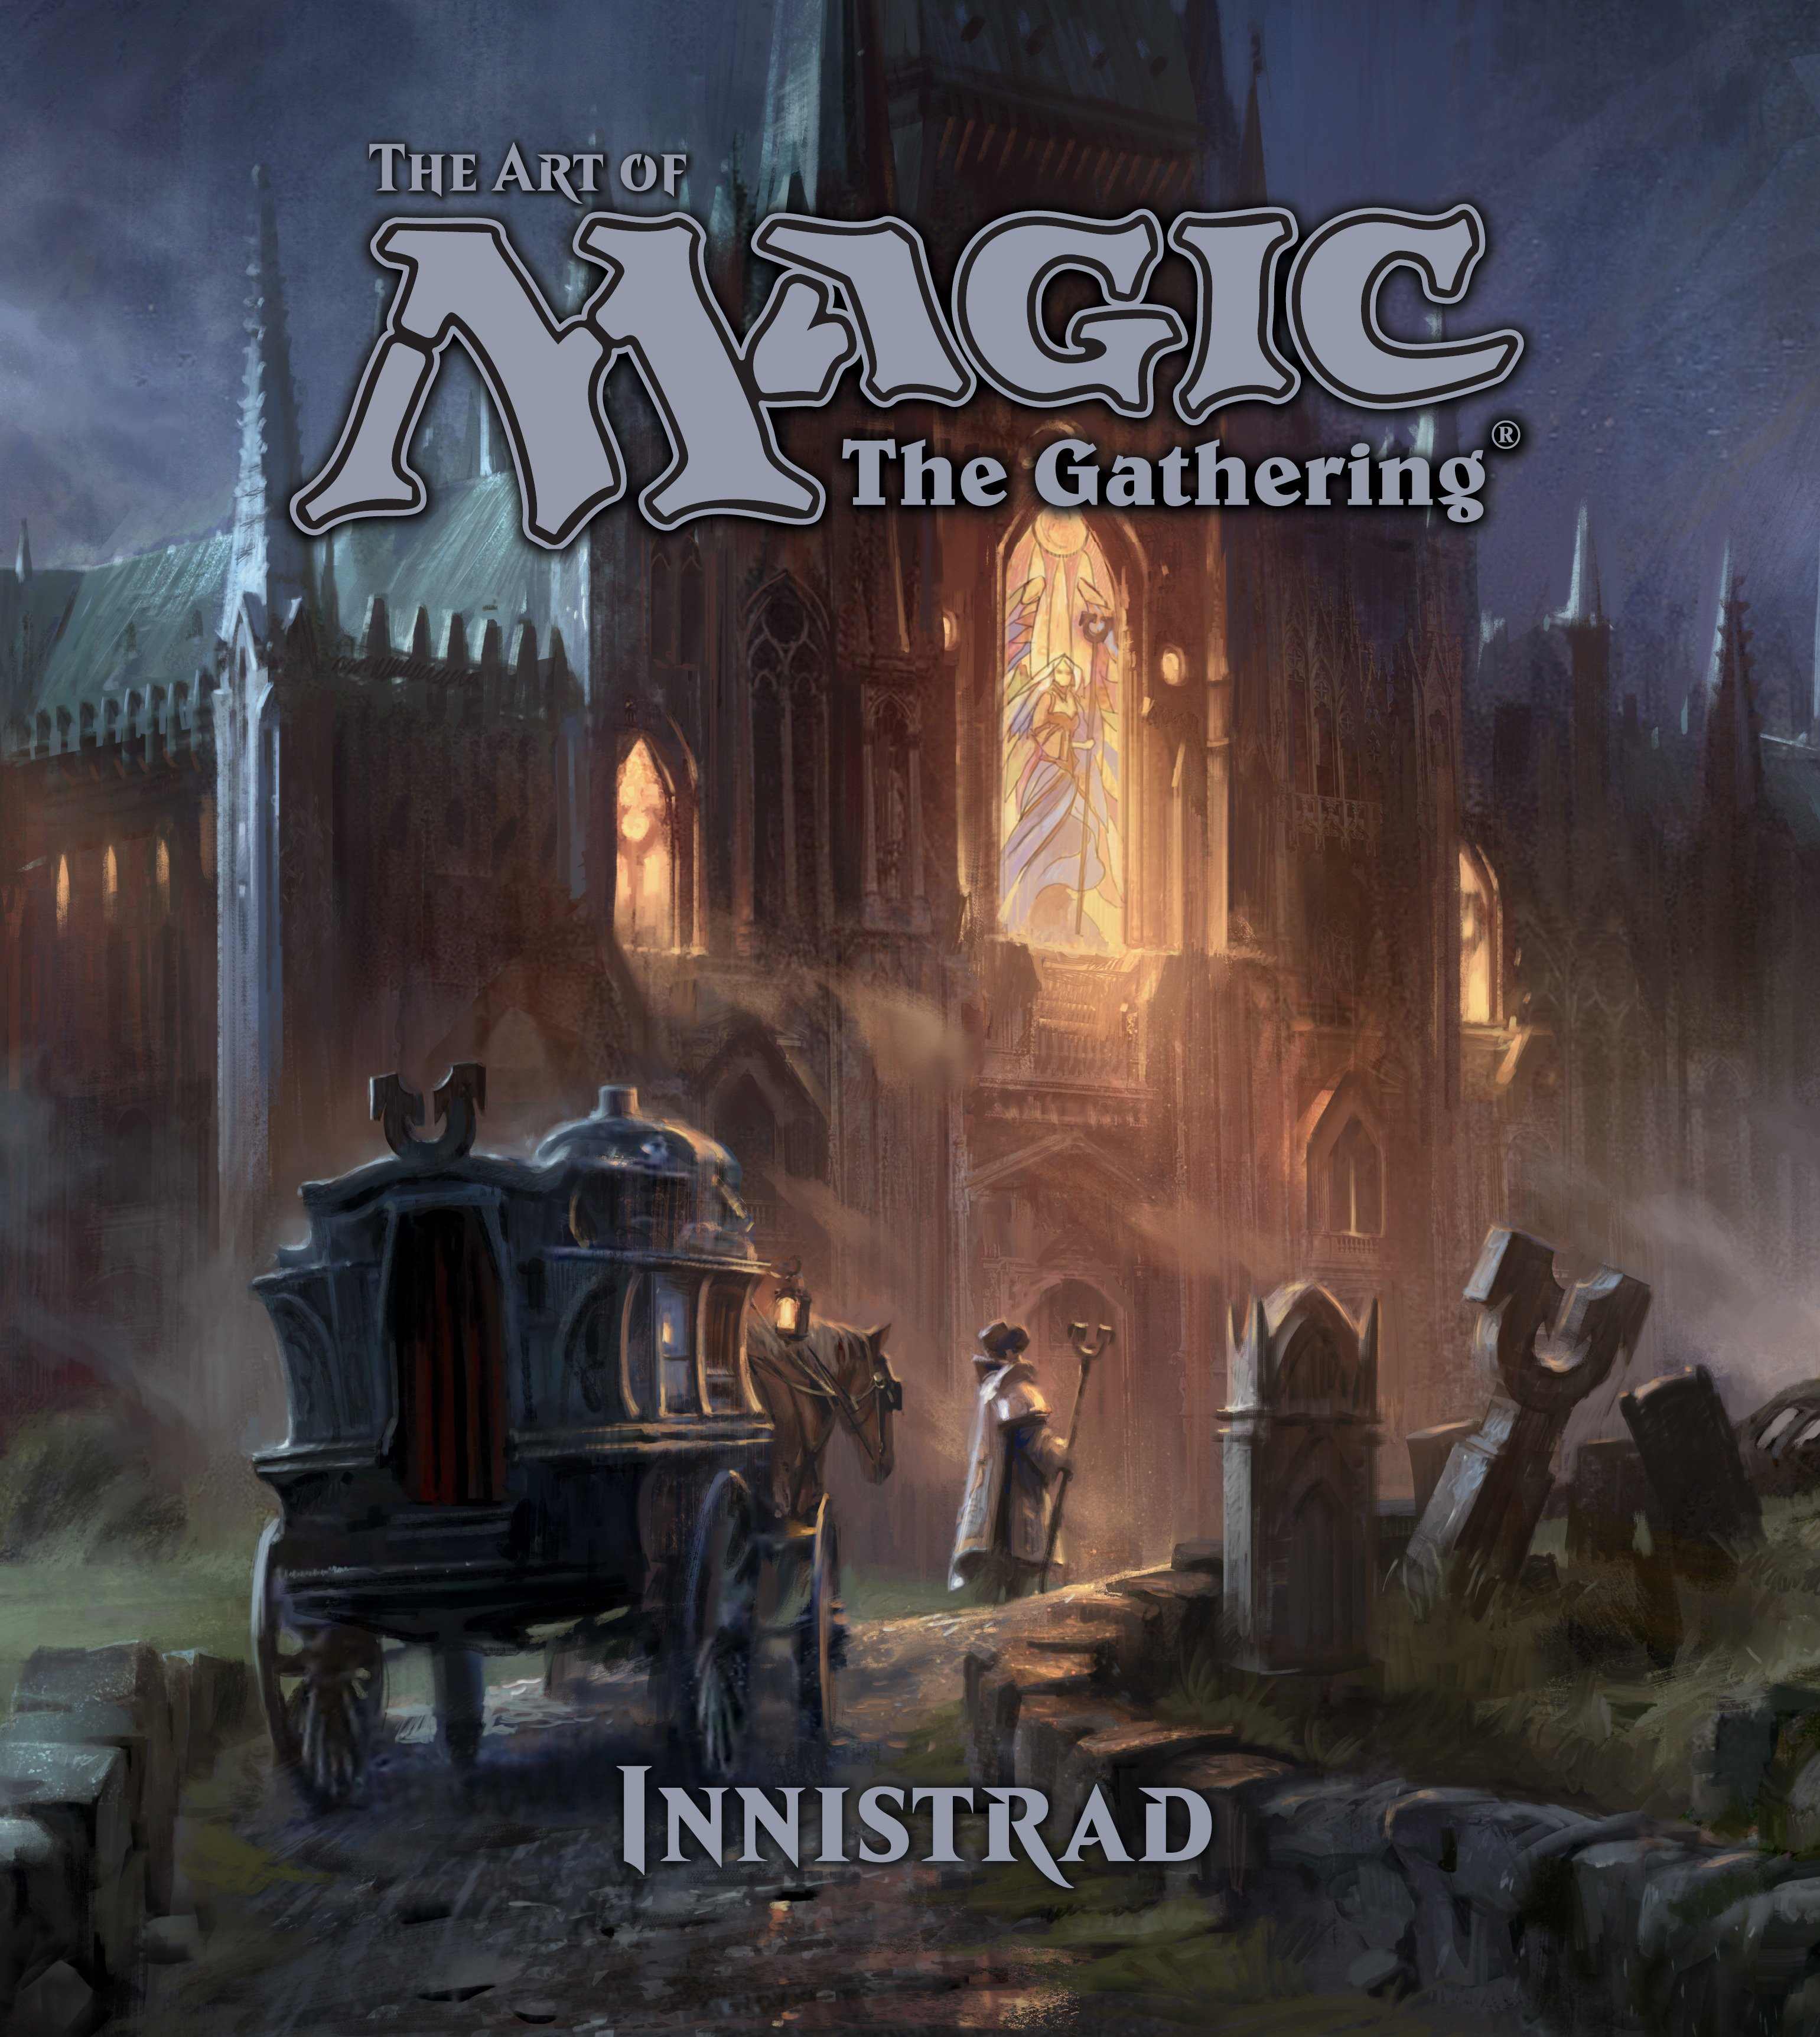 The art of magic the gathering innistrad2 the art of magic the gathering201611 voltagebd Choice Image